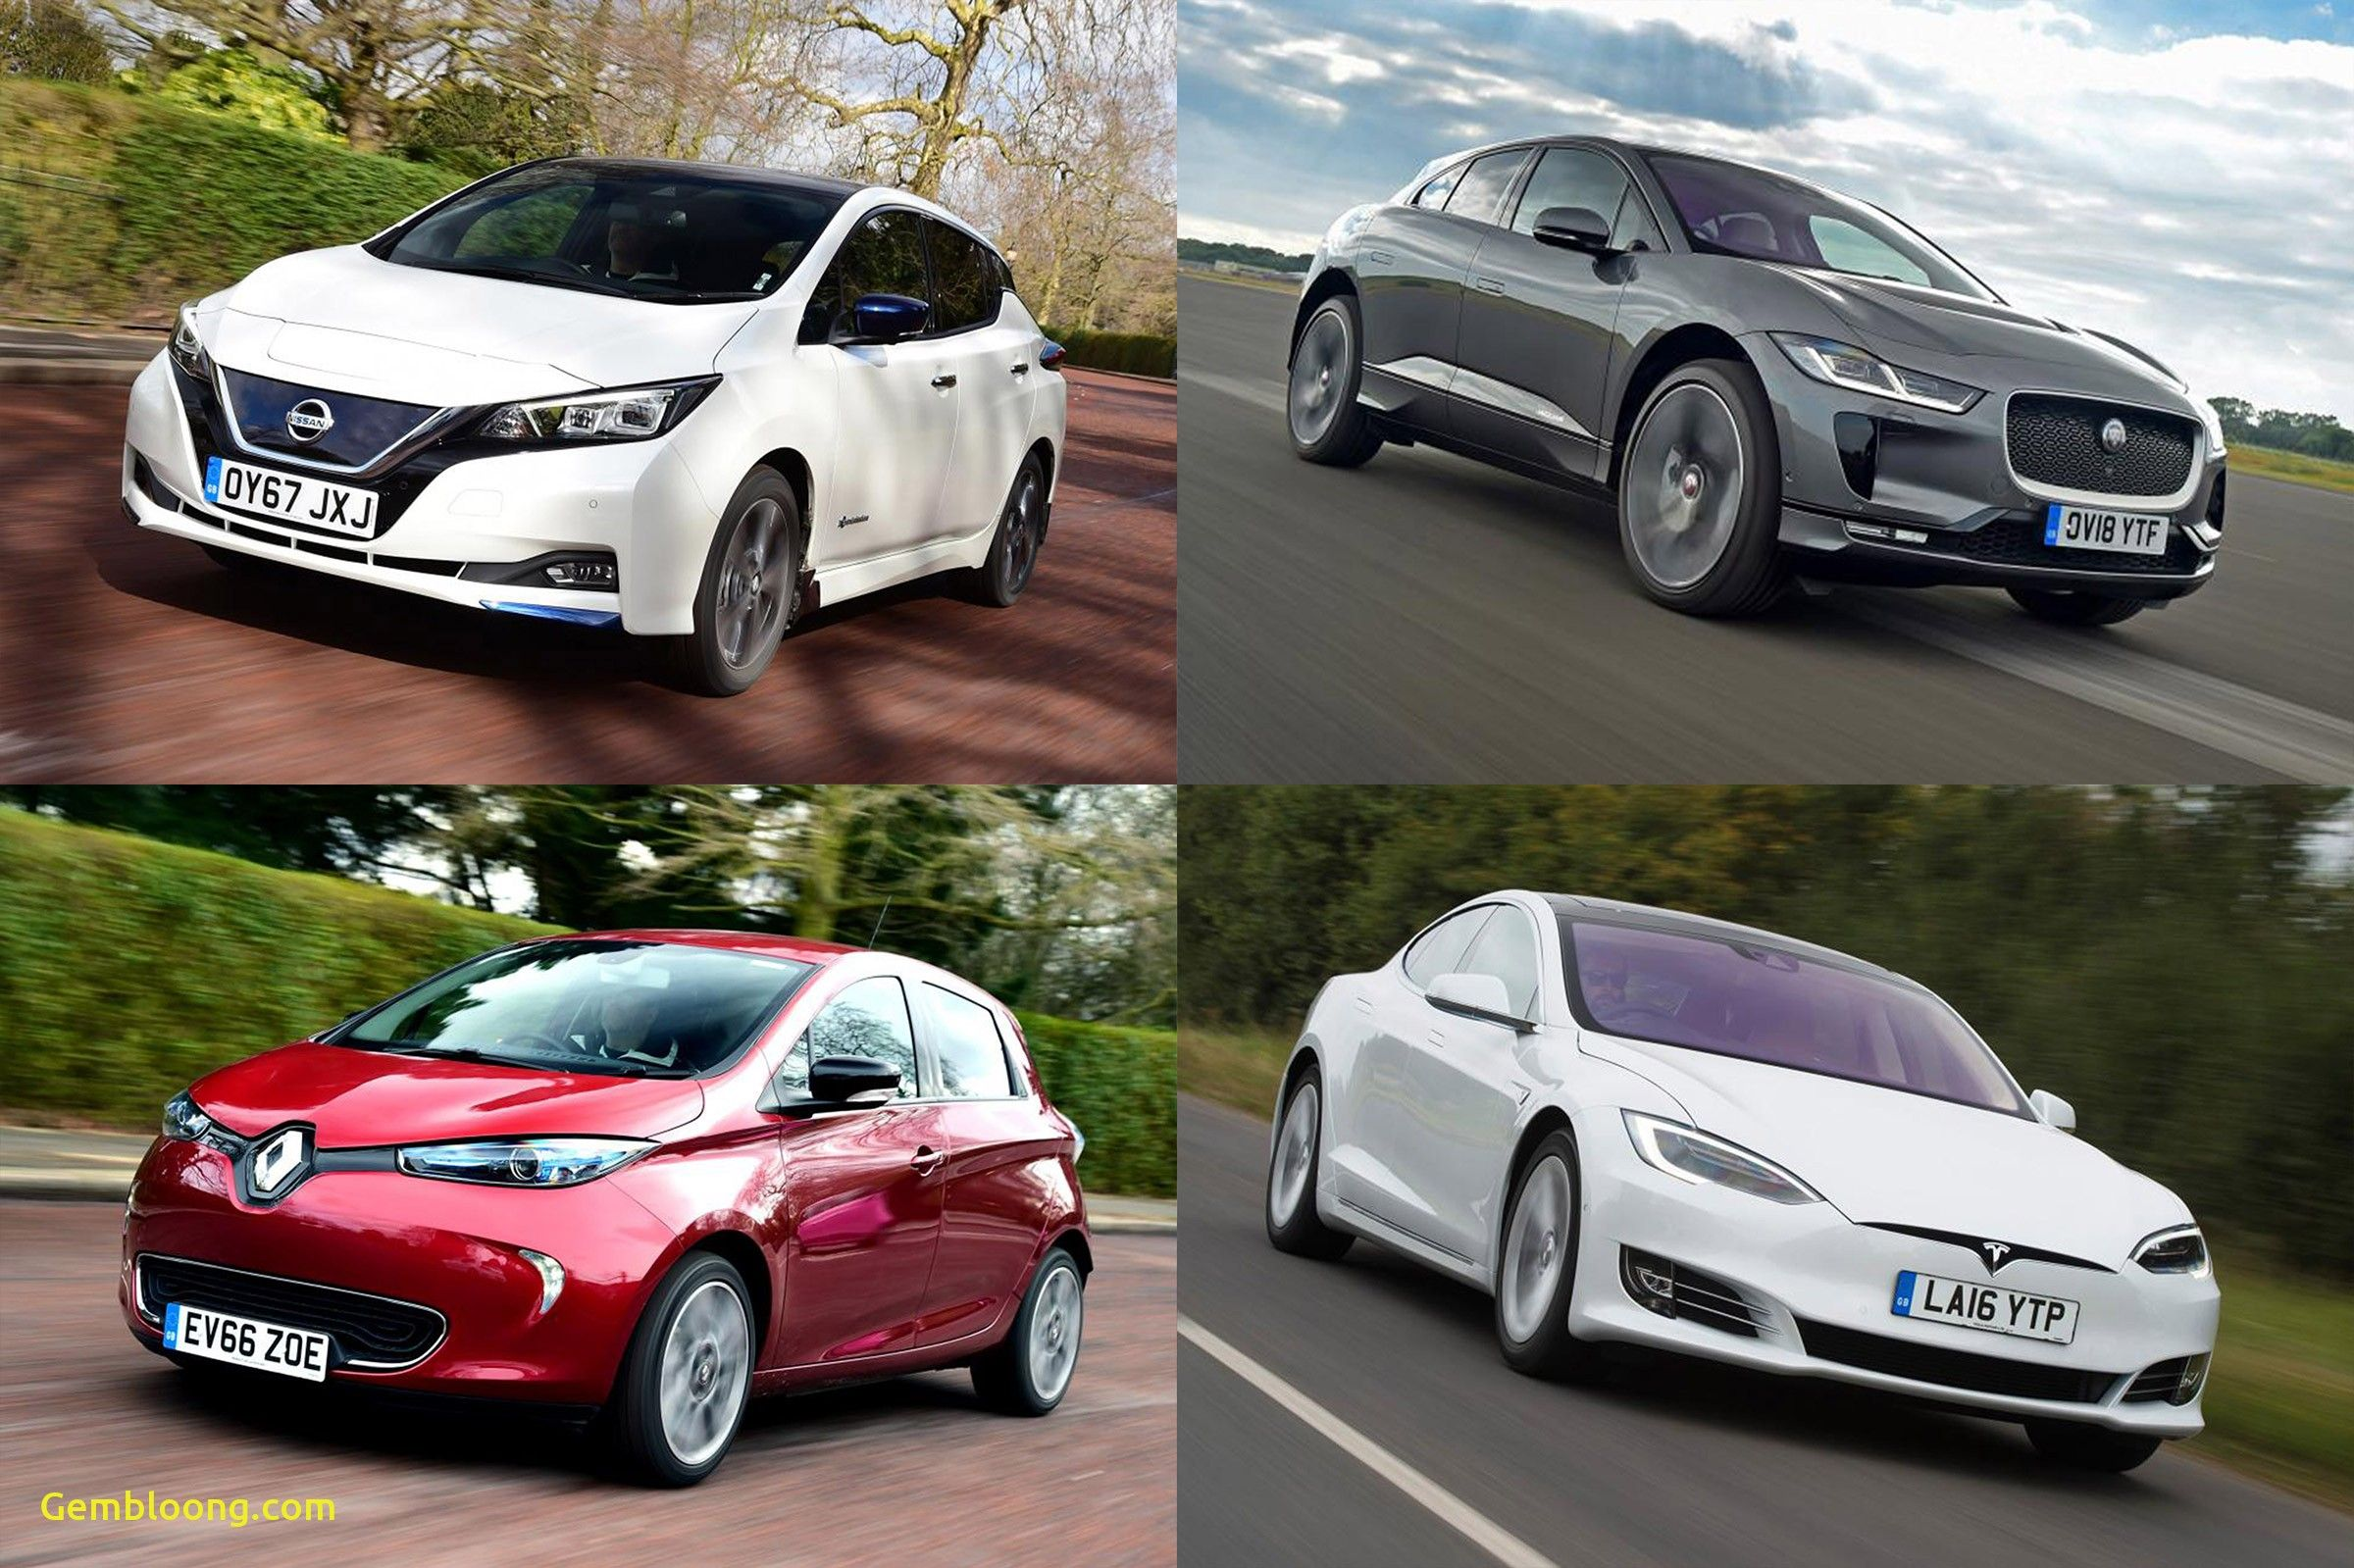 Awesome Cars Sale Uk in 2020 Best electric car, Bmw